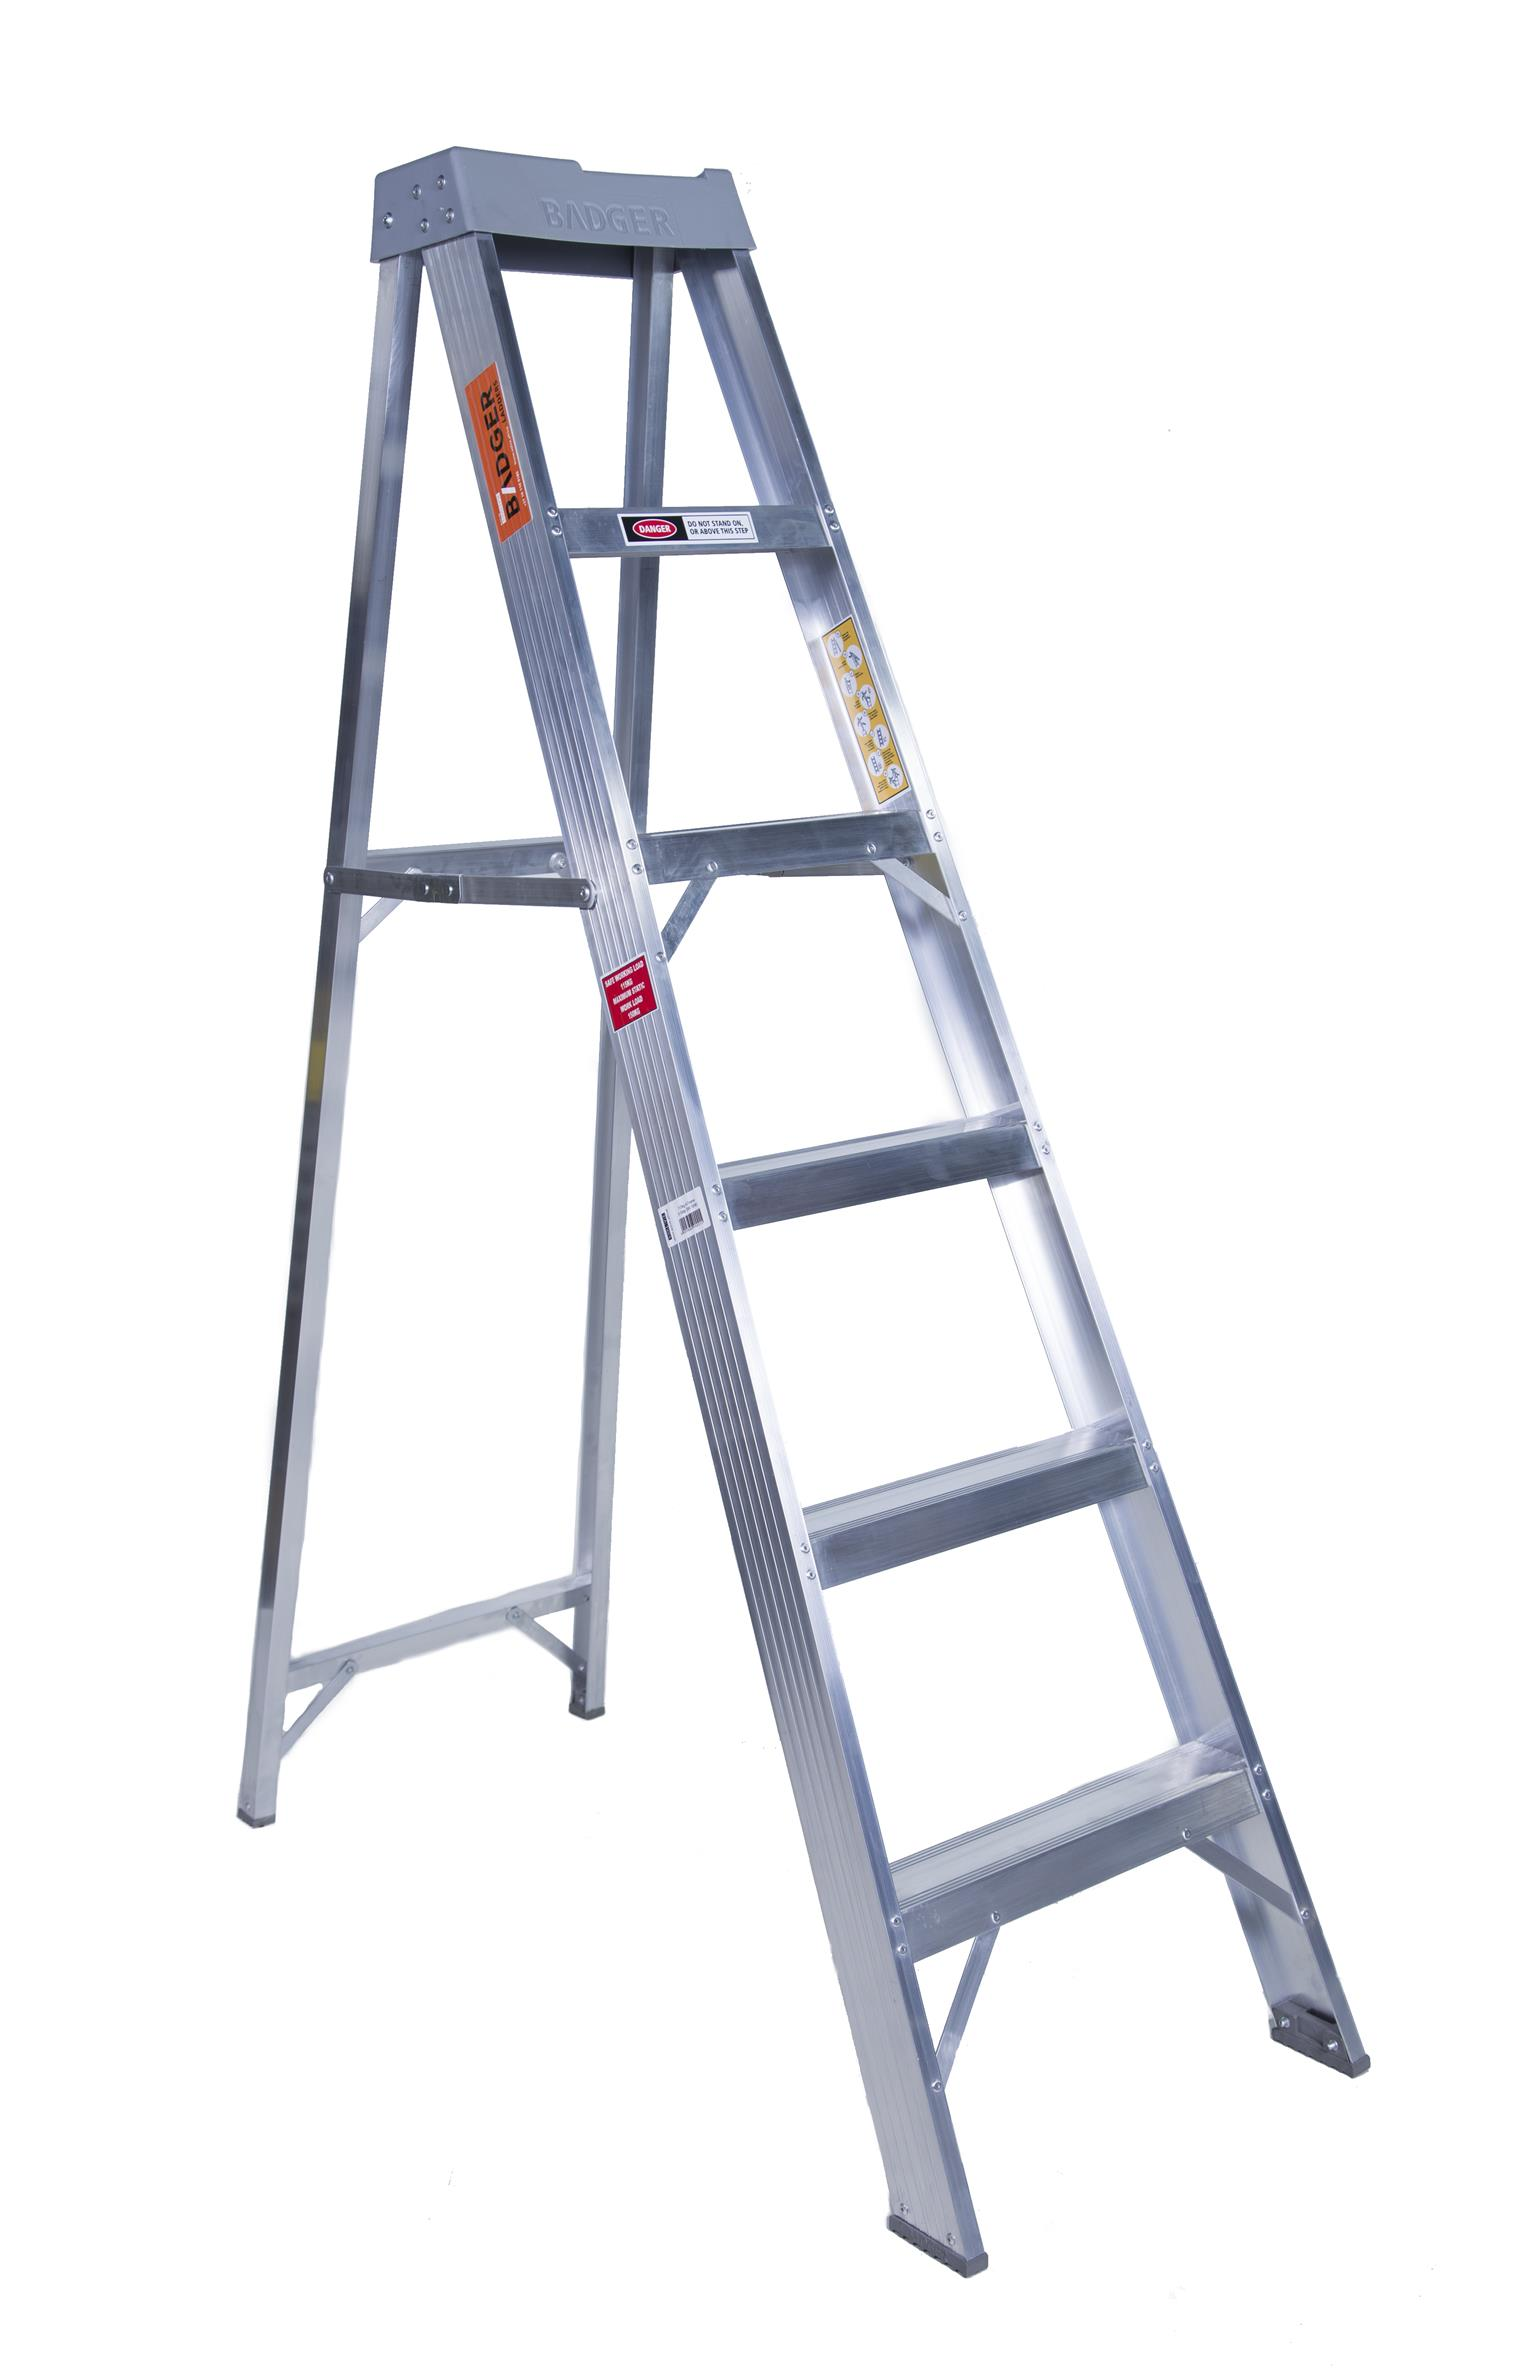 6 step ladders for sale, call for prices